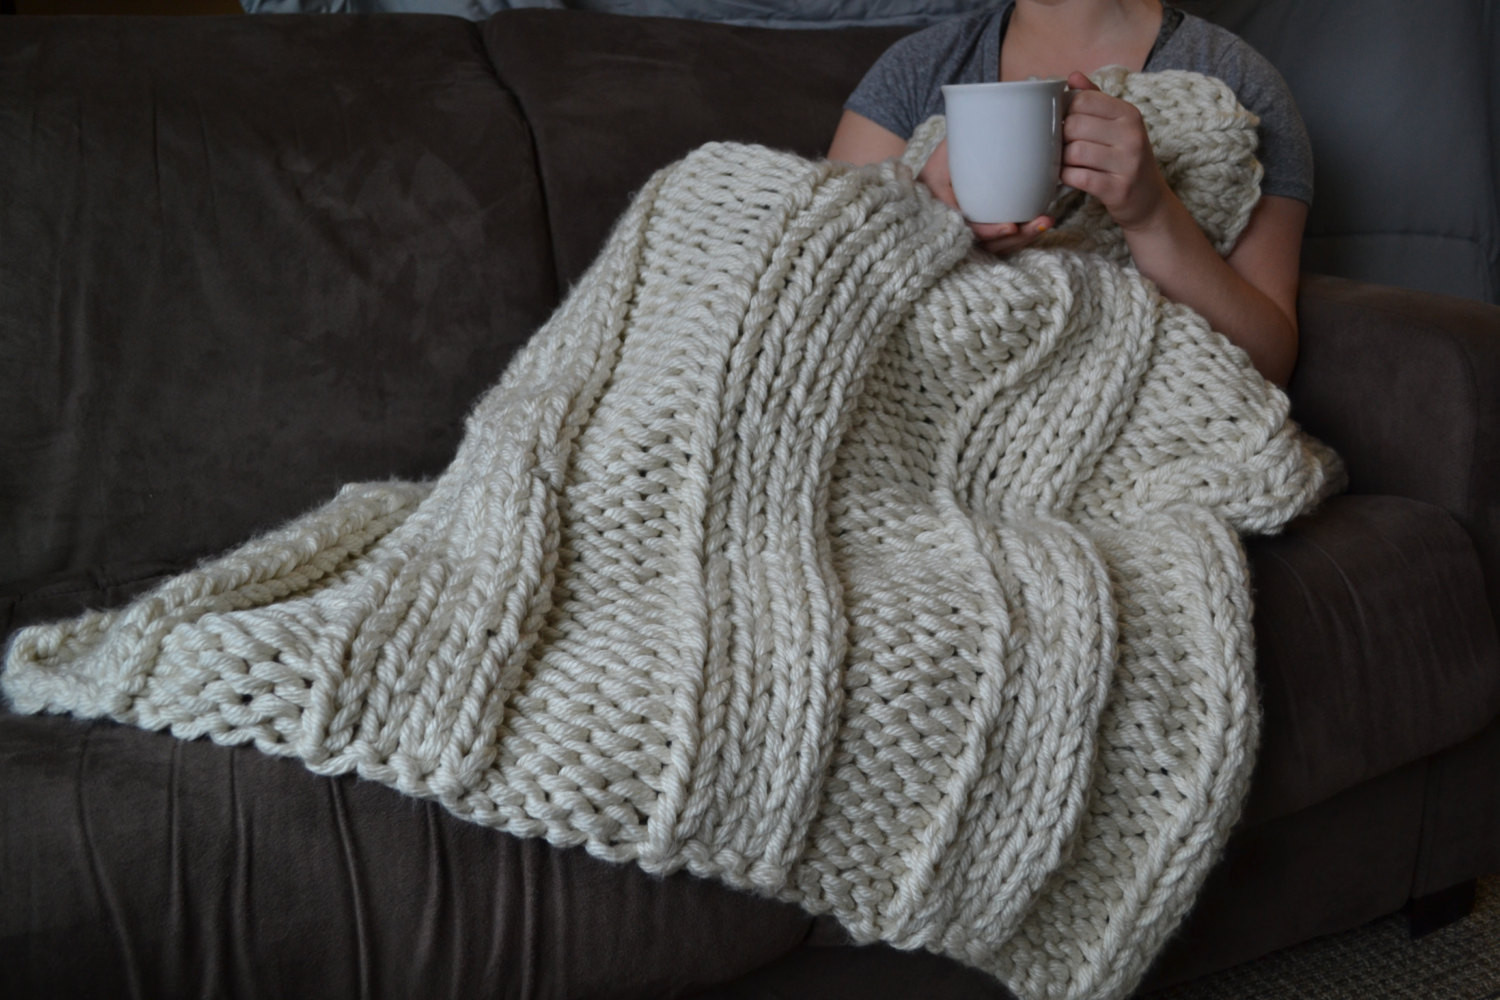 Bulky Knit Blanket Awesome Super Chunky Knit Blanket Extra soft Bulky Yarn Of Top 45 Images Bulky Knit Blanket